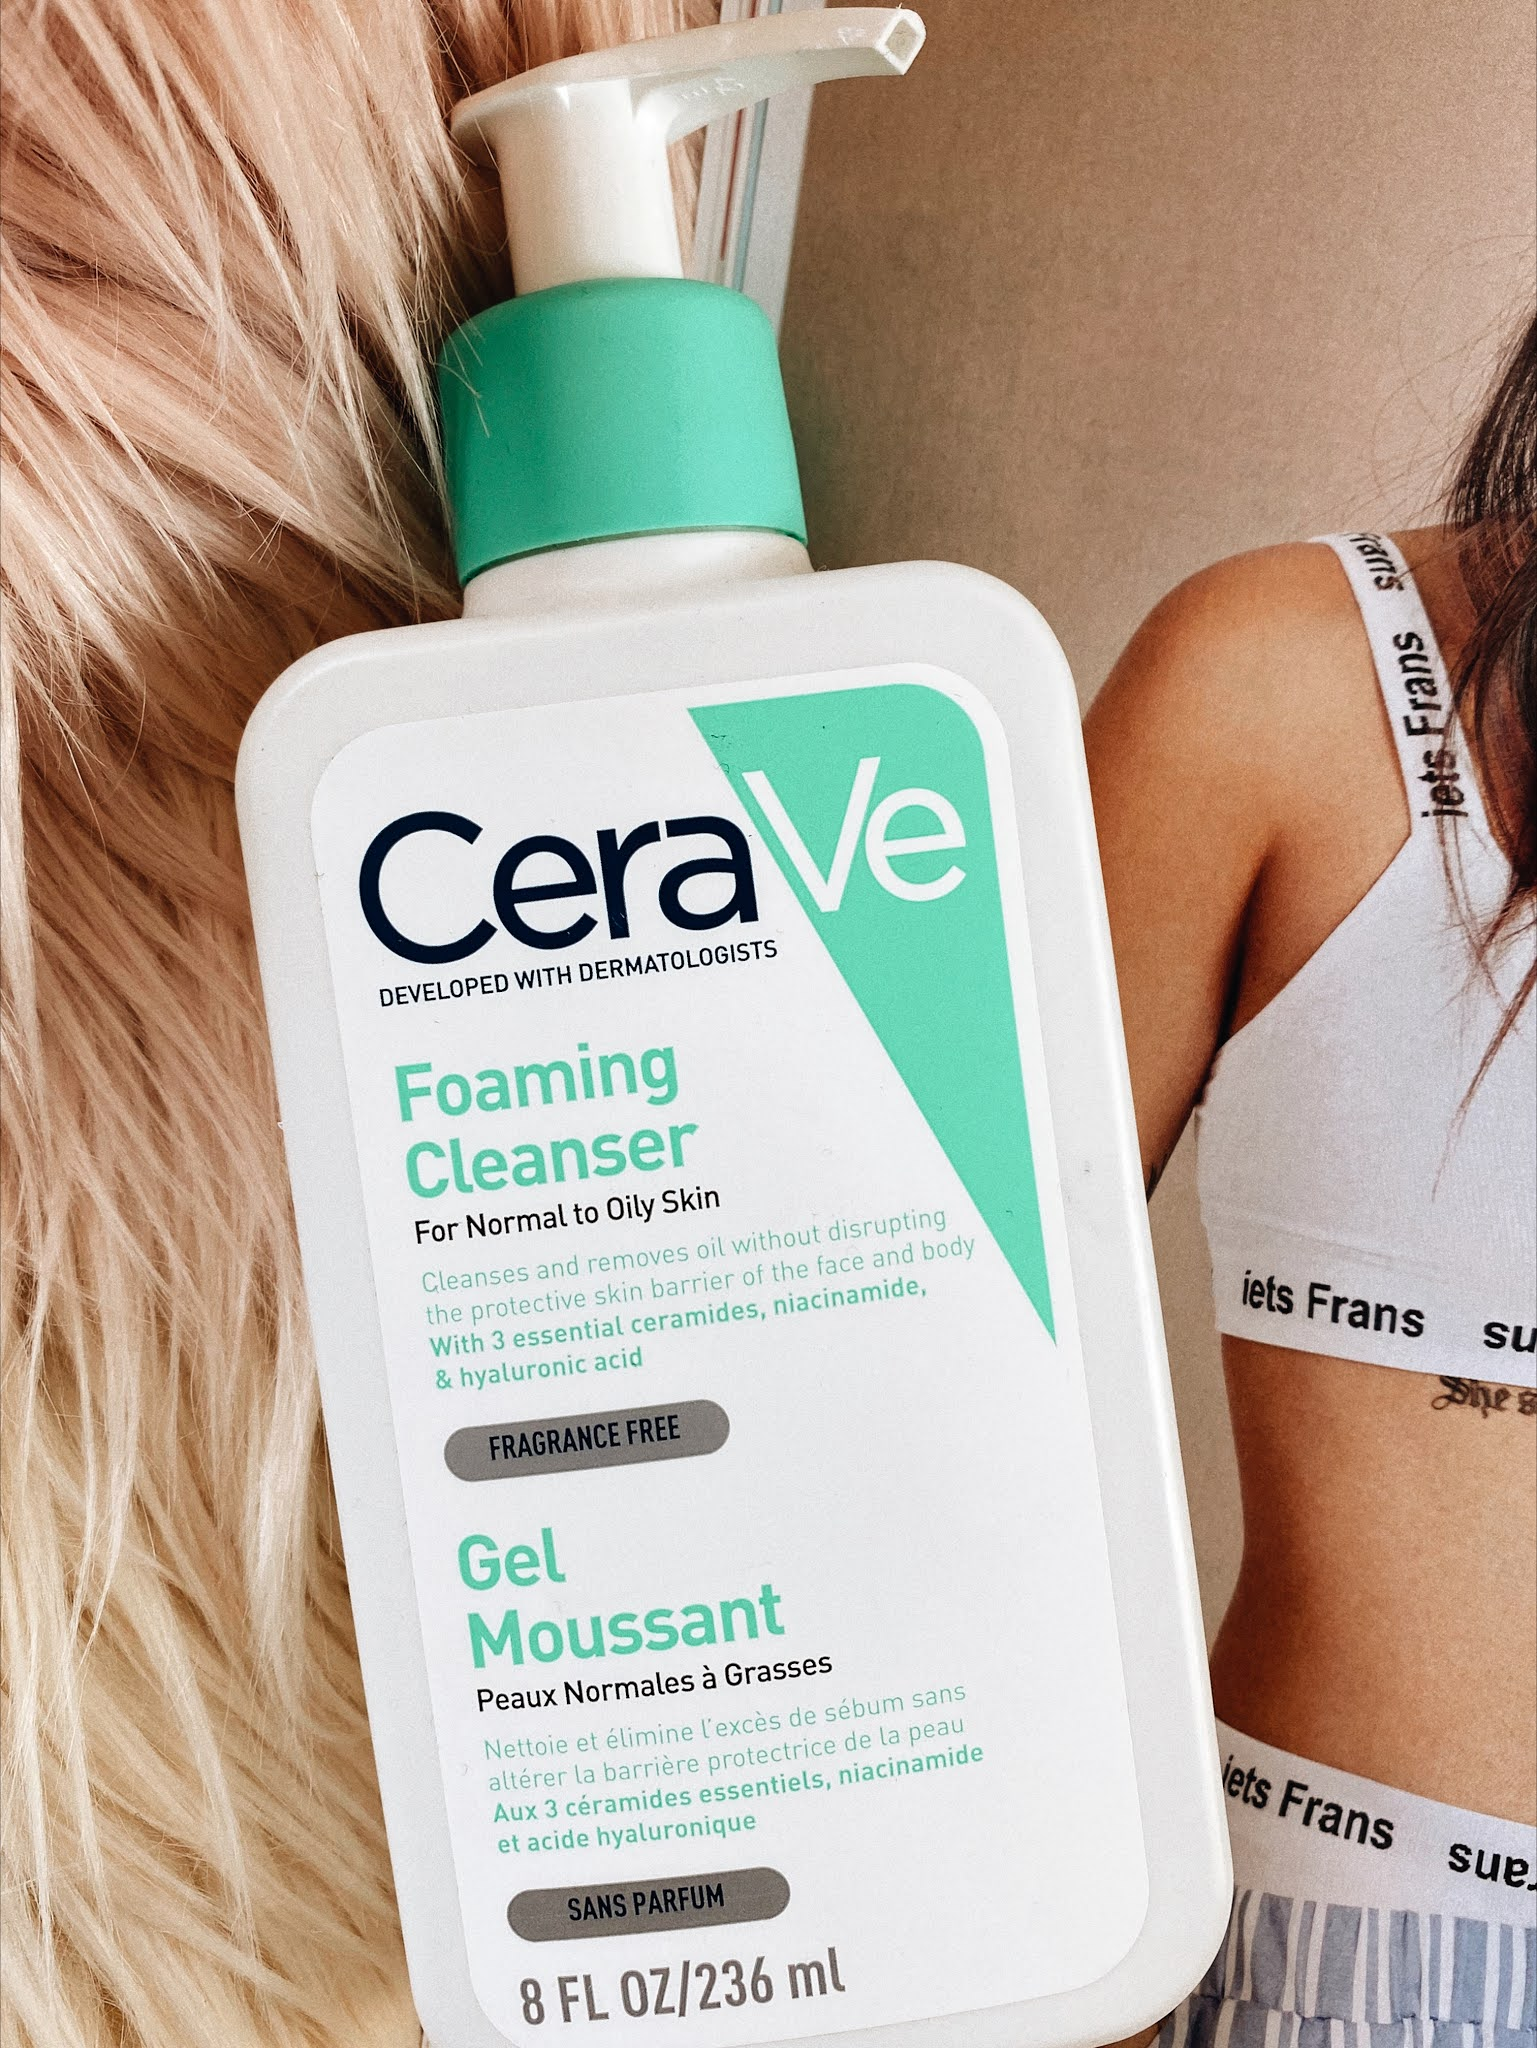 CeraVe foaming face wash cleaner review